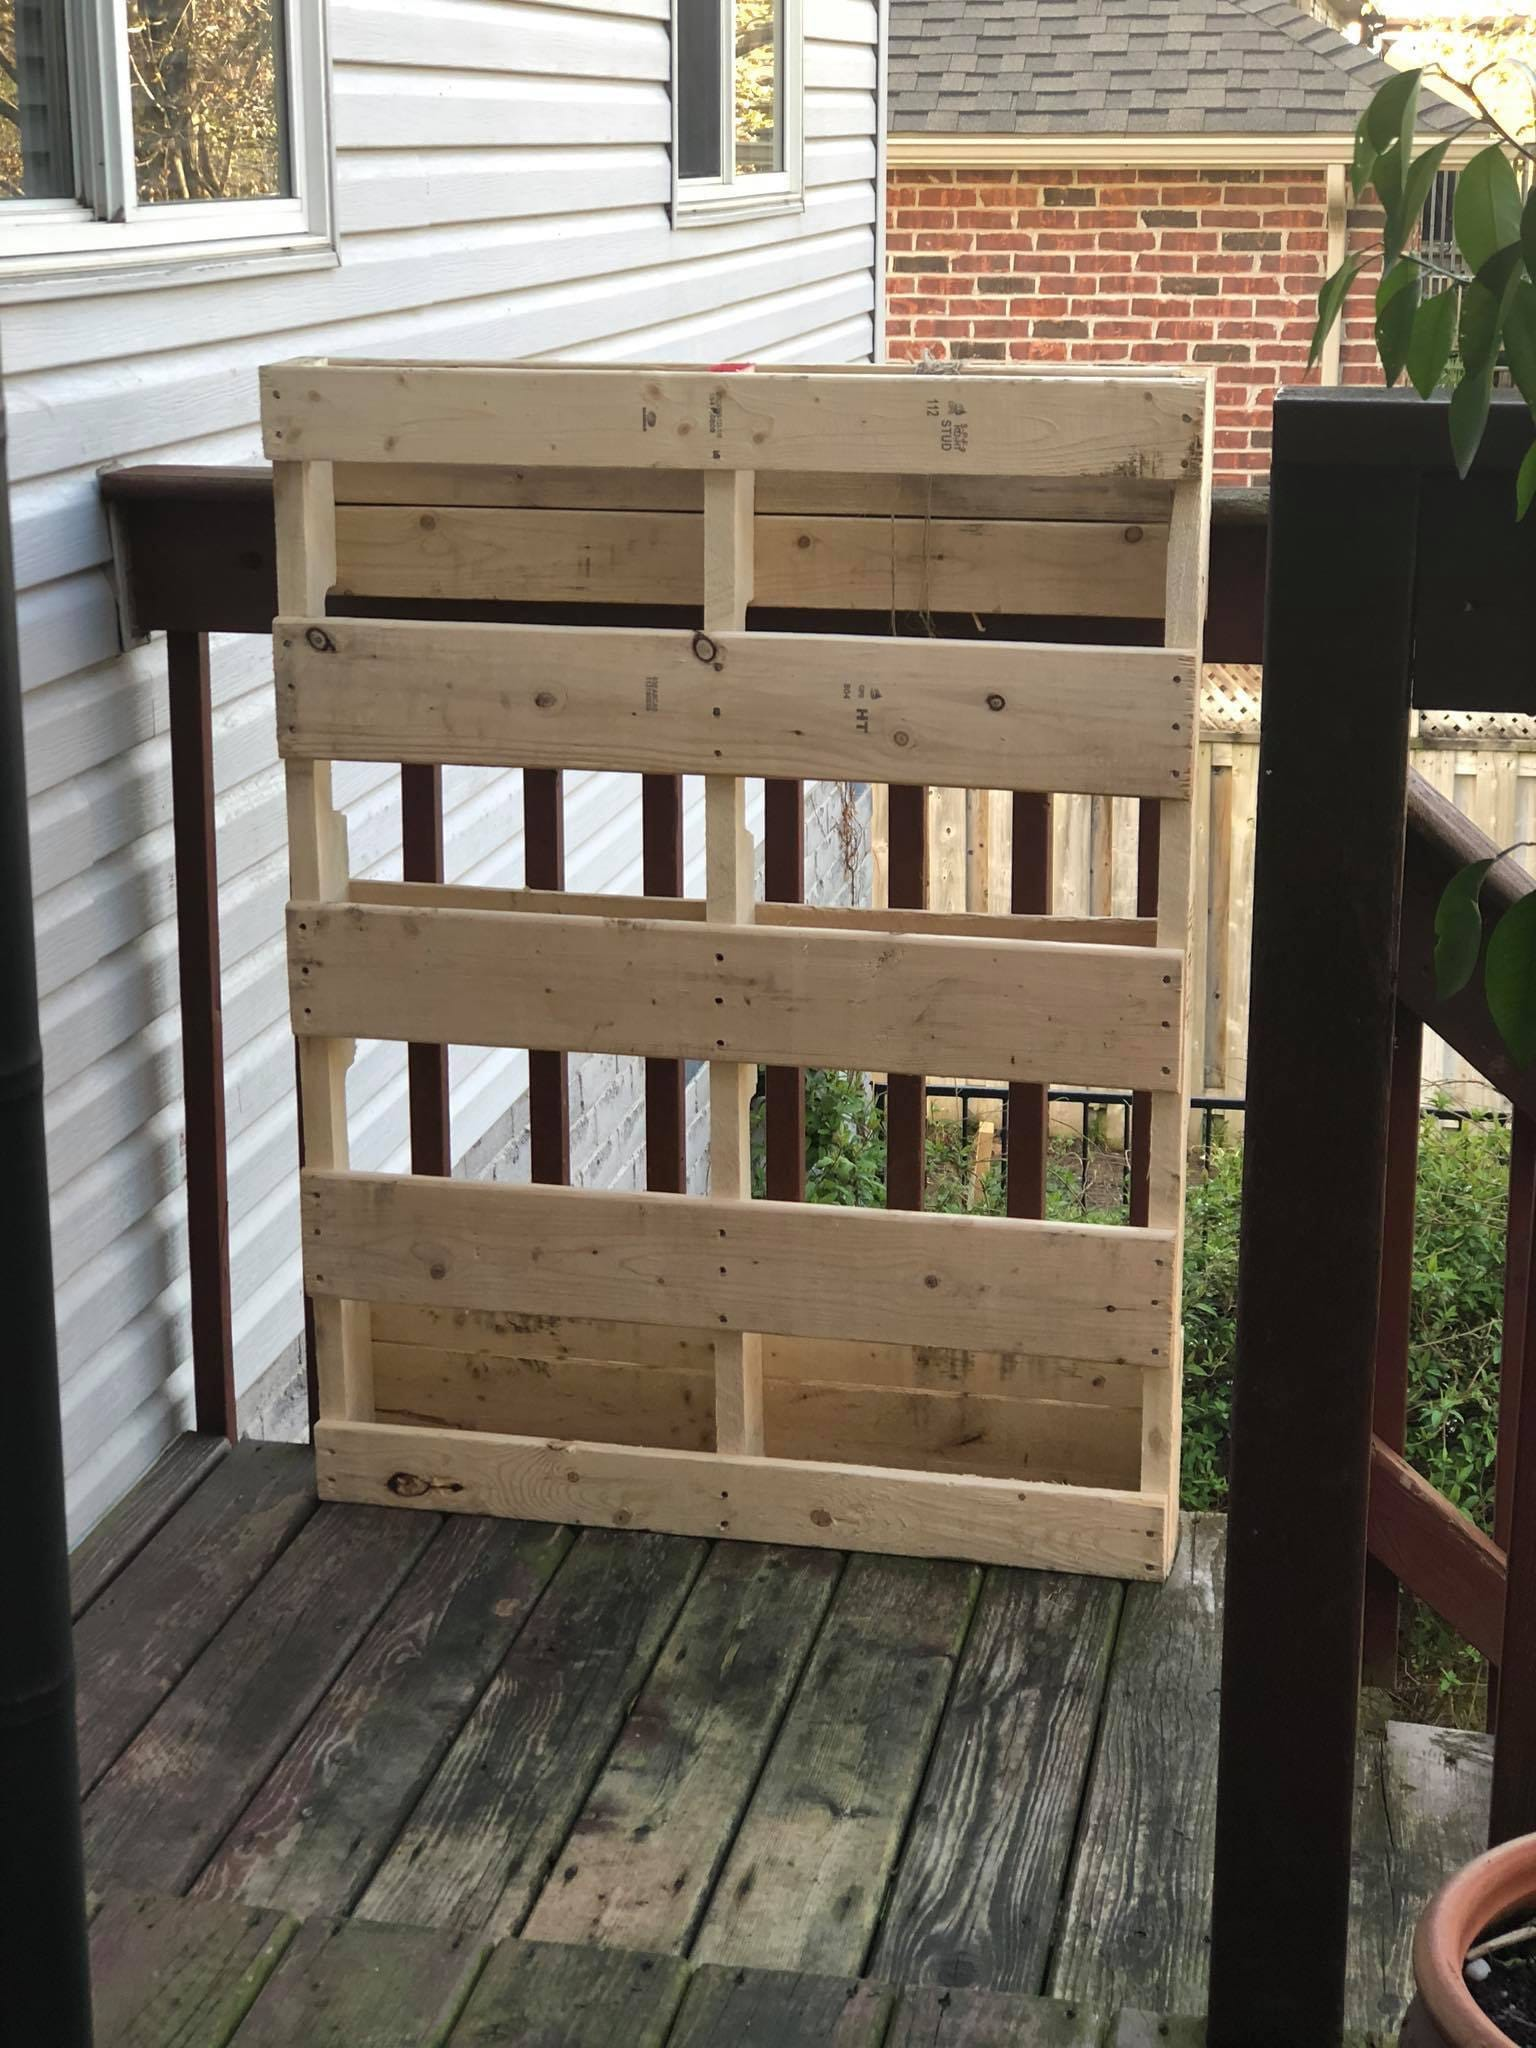 This was the pallet I chose. They arent all created equal so yours may not look the same. Look for slats that are in good shape on the front and the back. And since all pallets are treated for pest control, make sure the stamp shows HT (heat treated) and not MB (Methyl Bromide). MB is a serious toxin that you dont want anywhere near the food youre going to grow and eat!